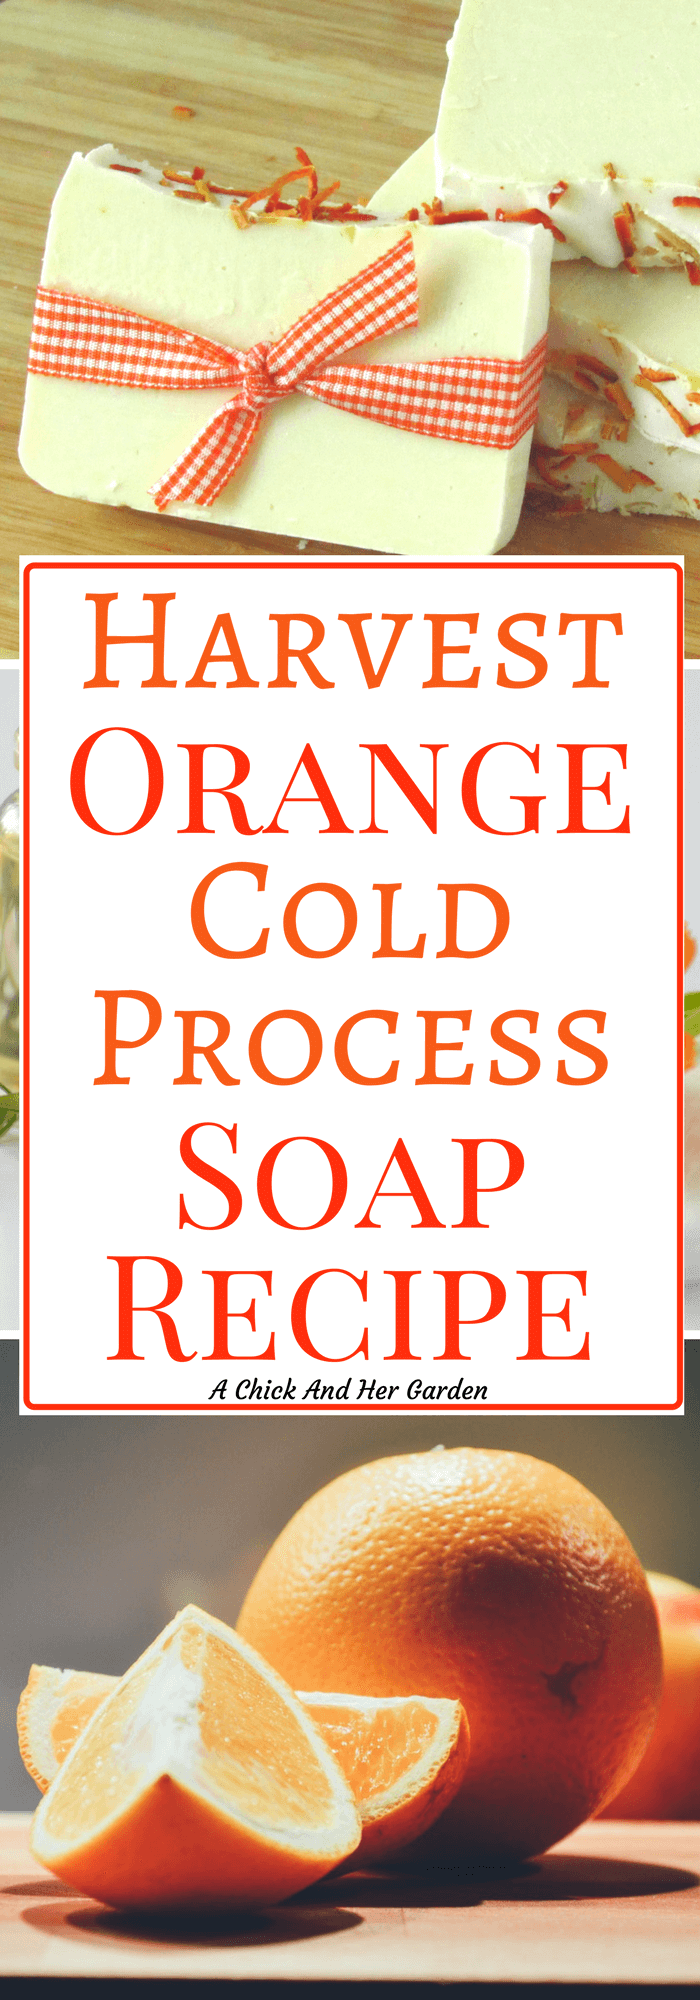 This soap recipe is the perfect soap for transitioning into fall and winter months! It's refreshing yet woodsy and so moisturizing!